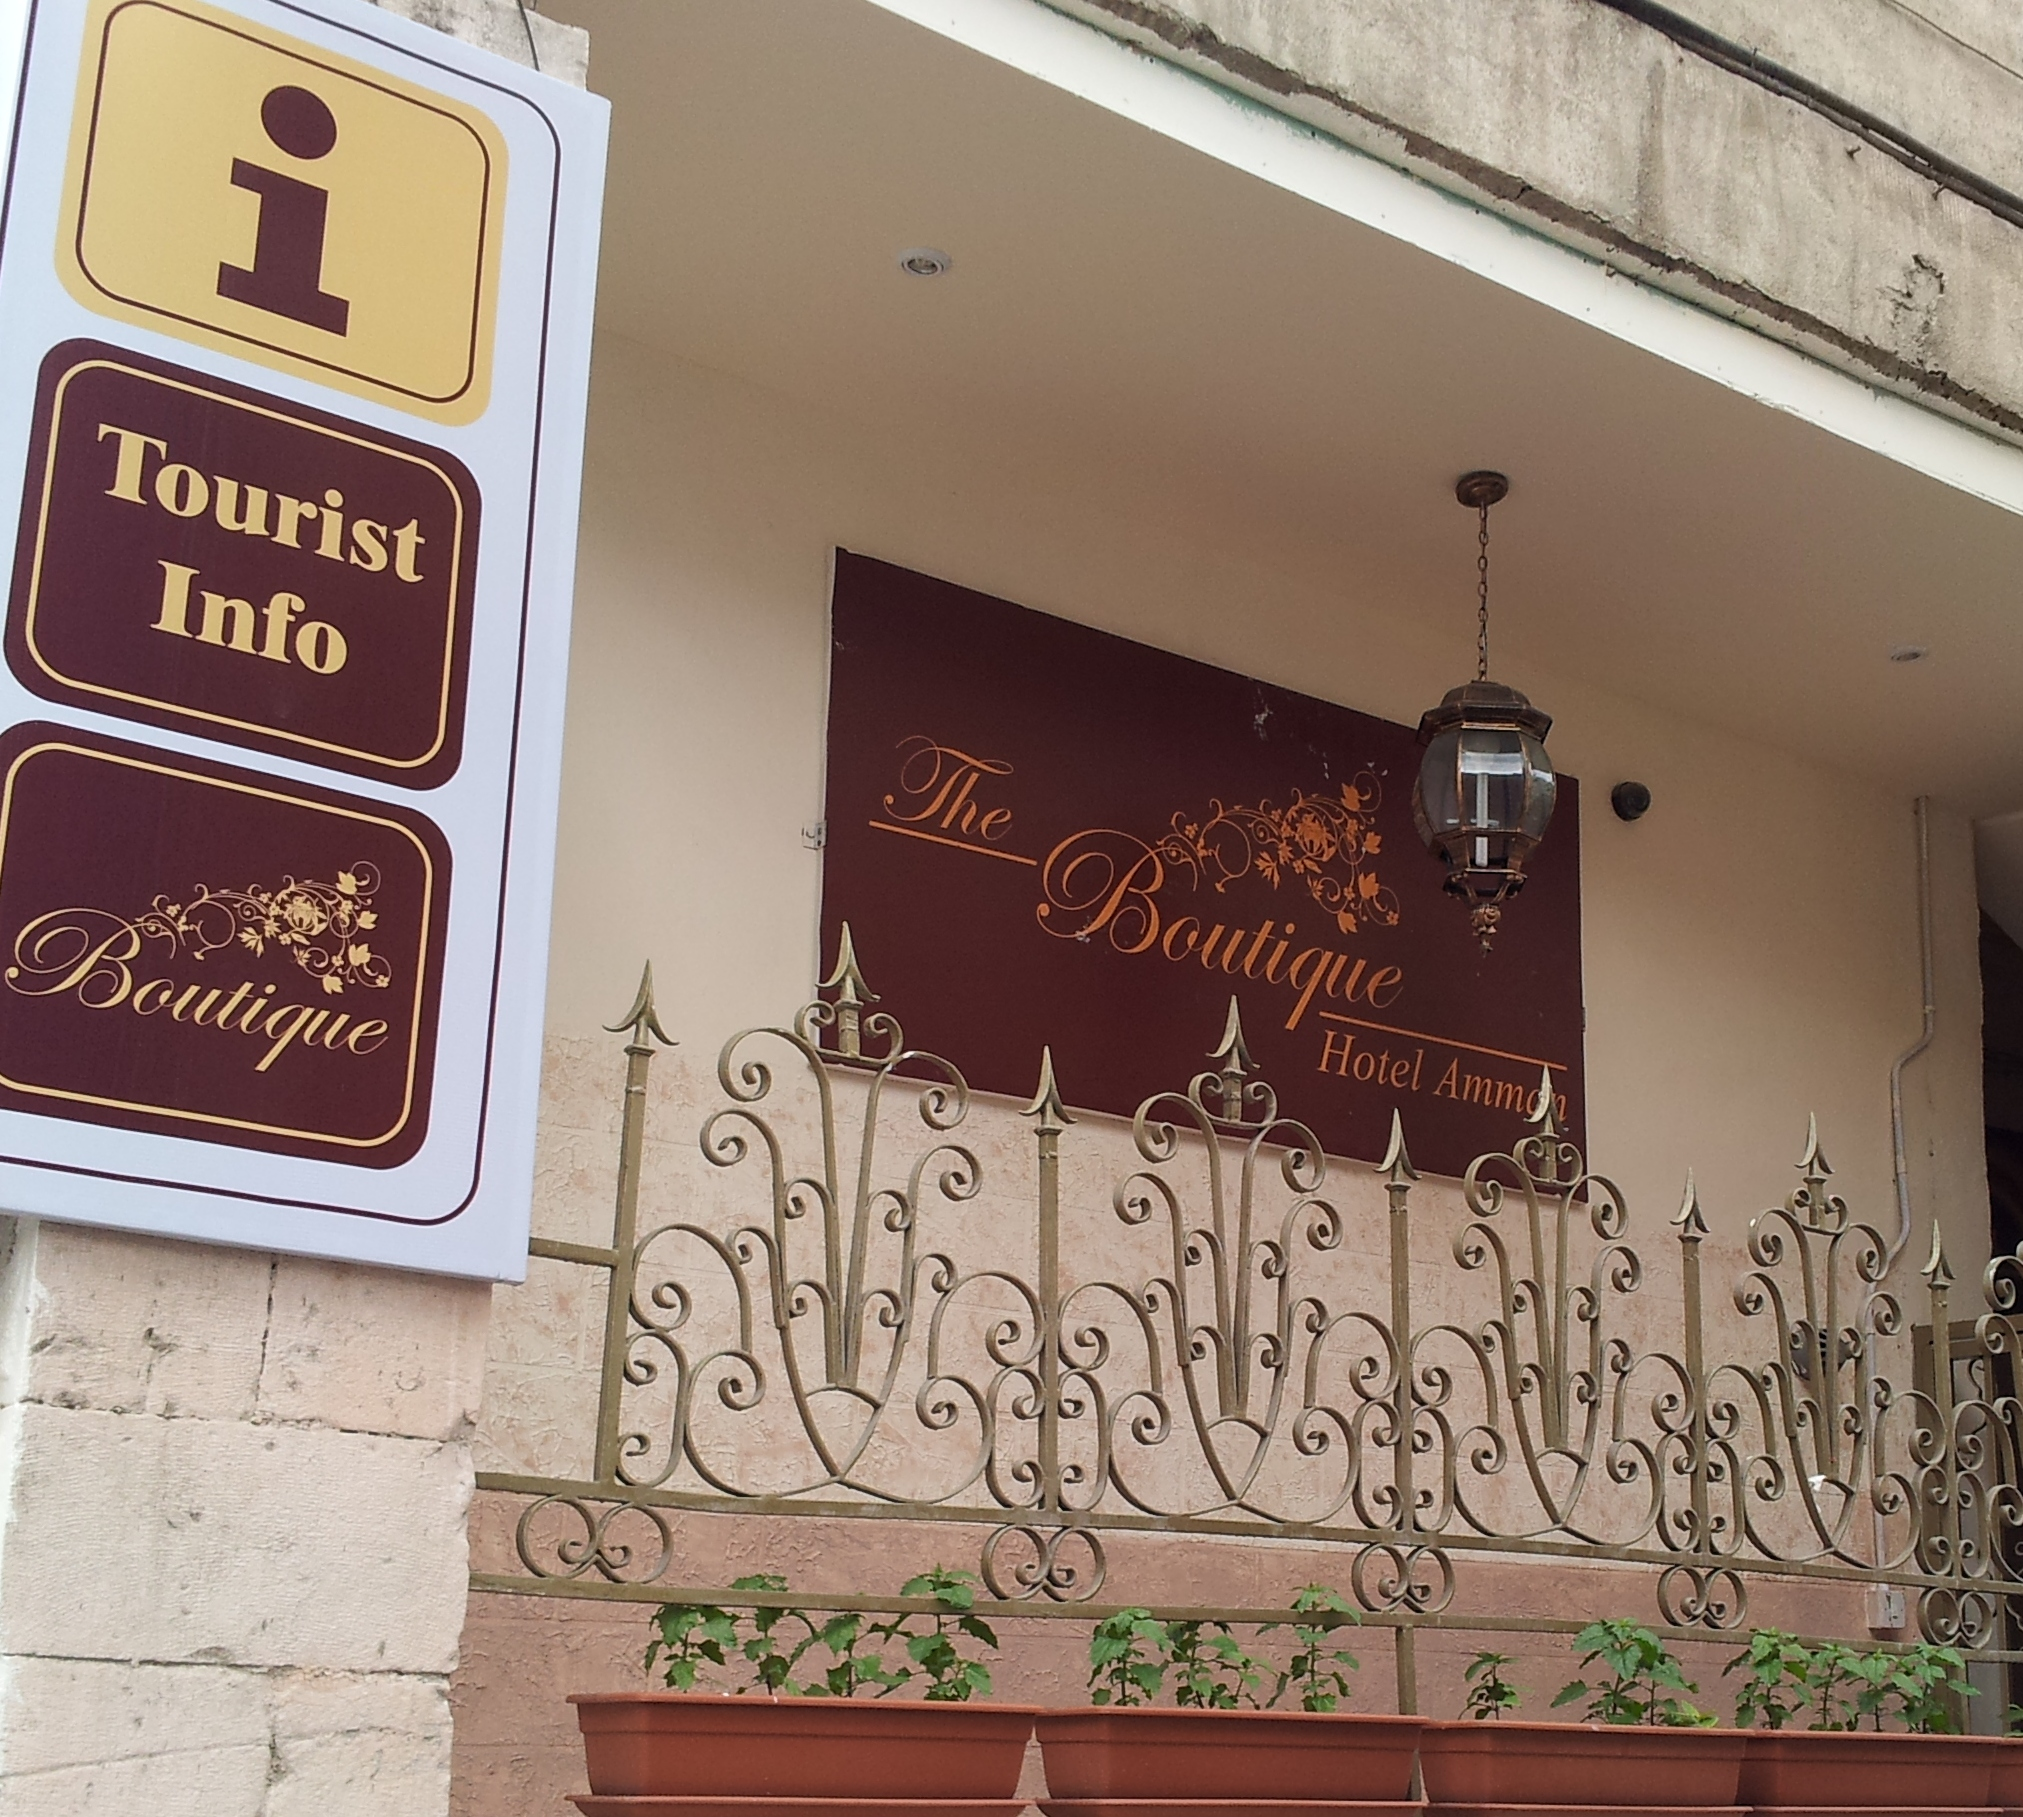 The Boutique Hotel Amman